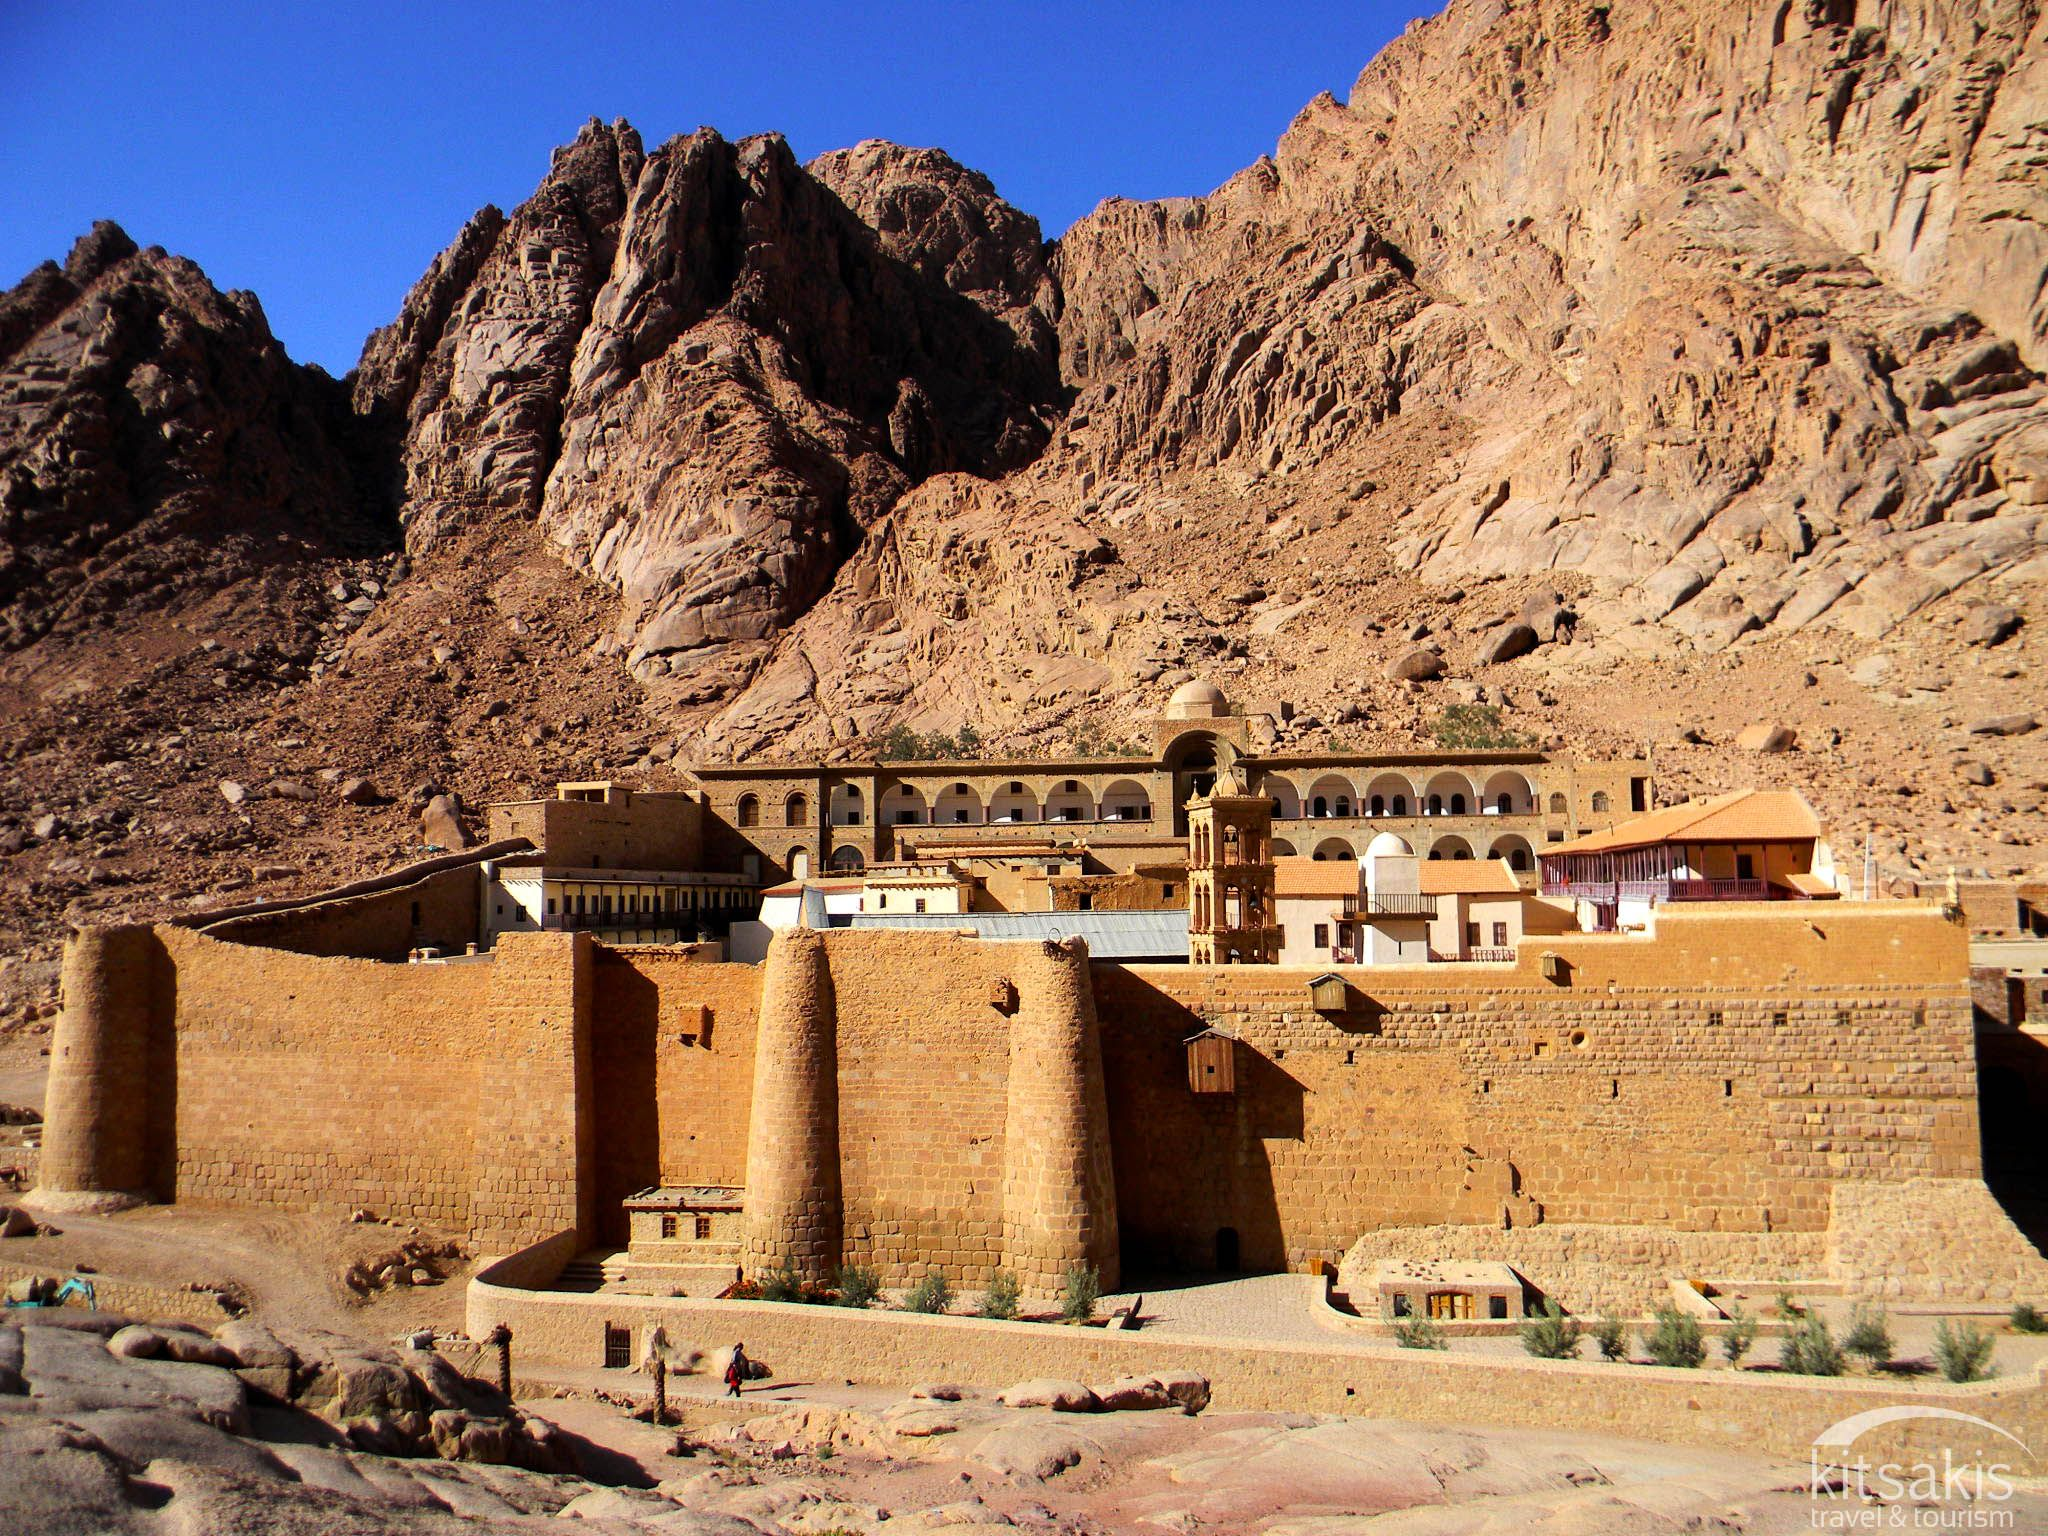 Saint Catherine Monastery, listed by UNESCO as a World